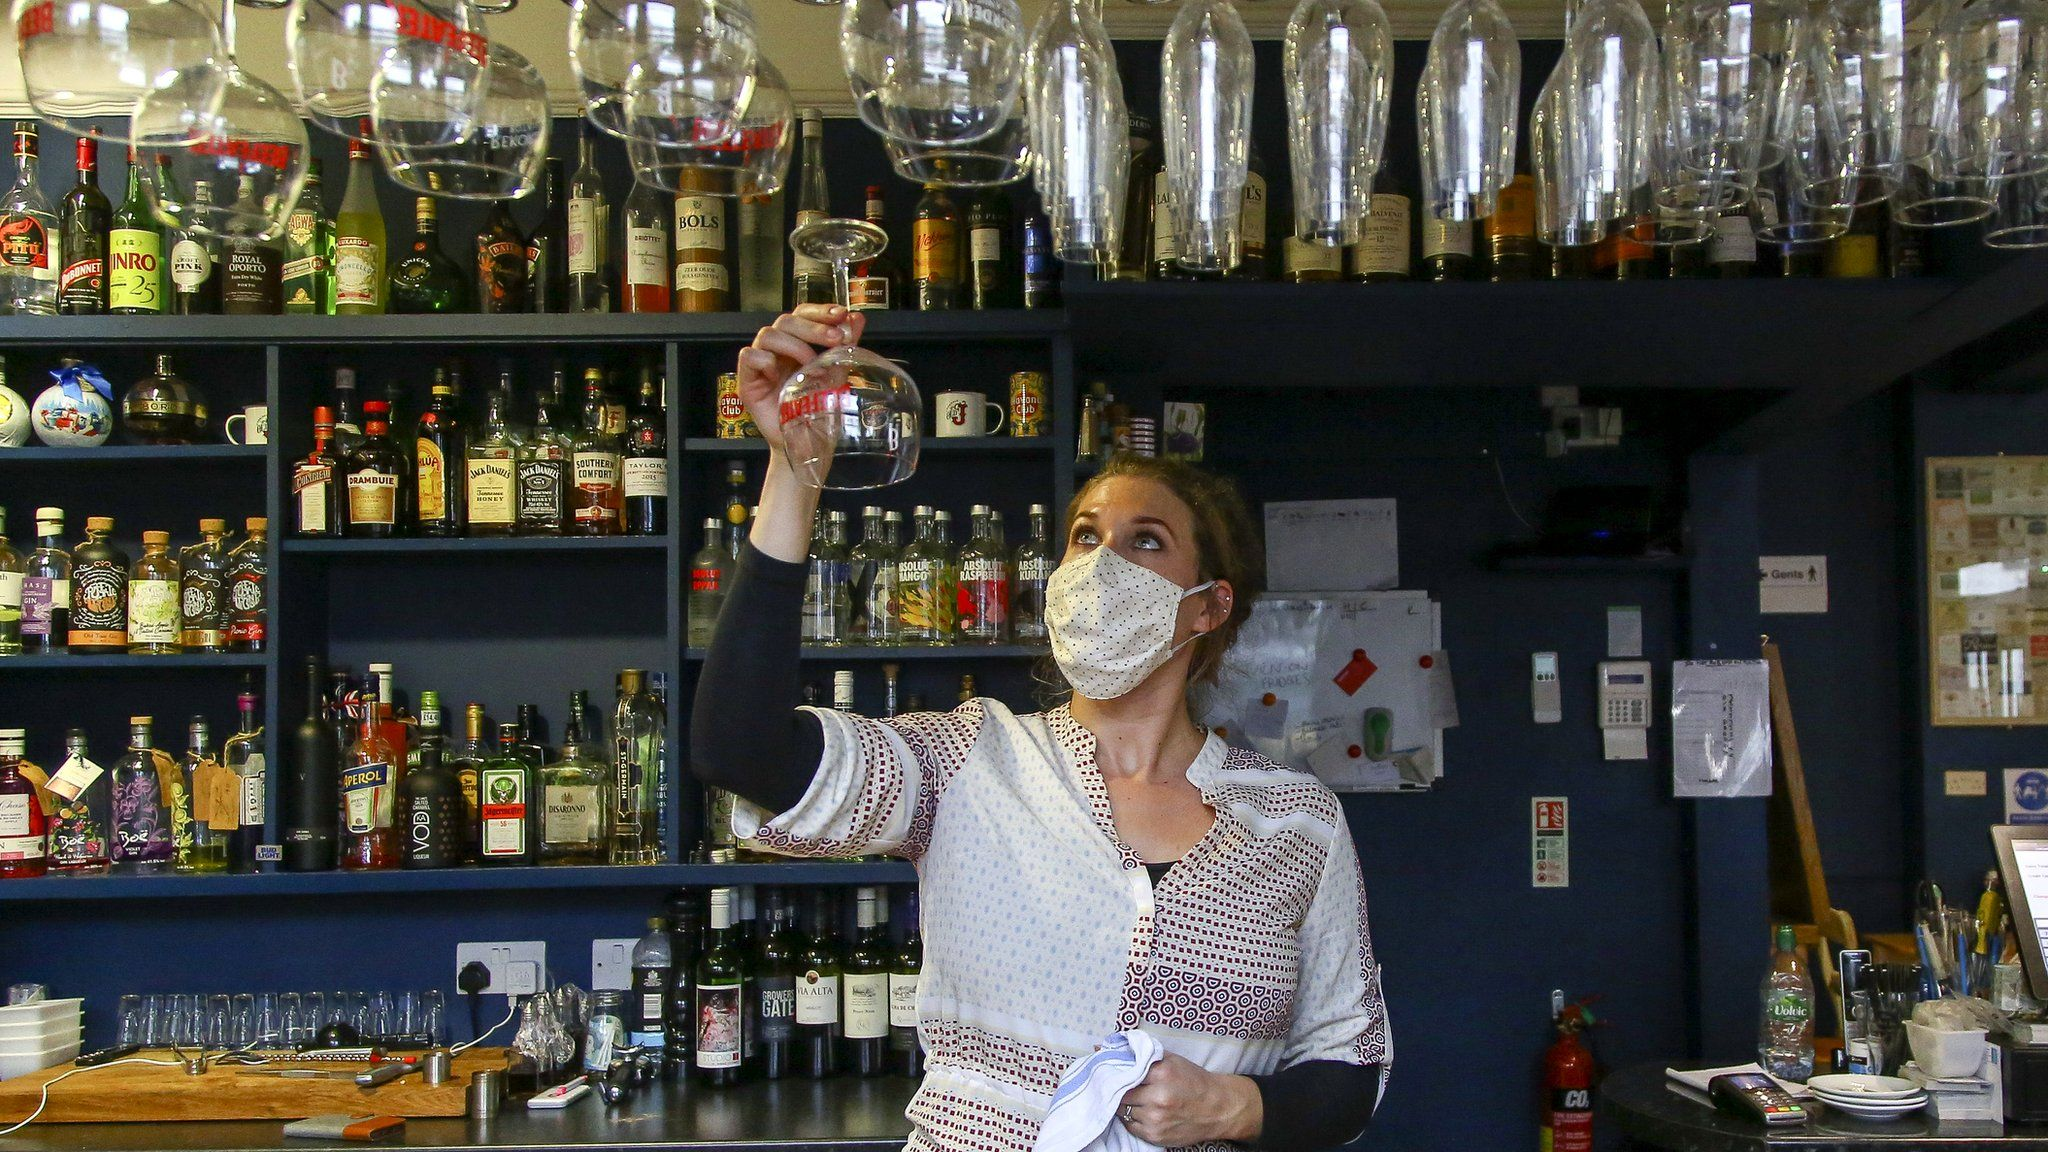 Co-owner of the Banc pub, Holly Adams-Evans, works behind the bar in Knighton